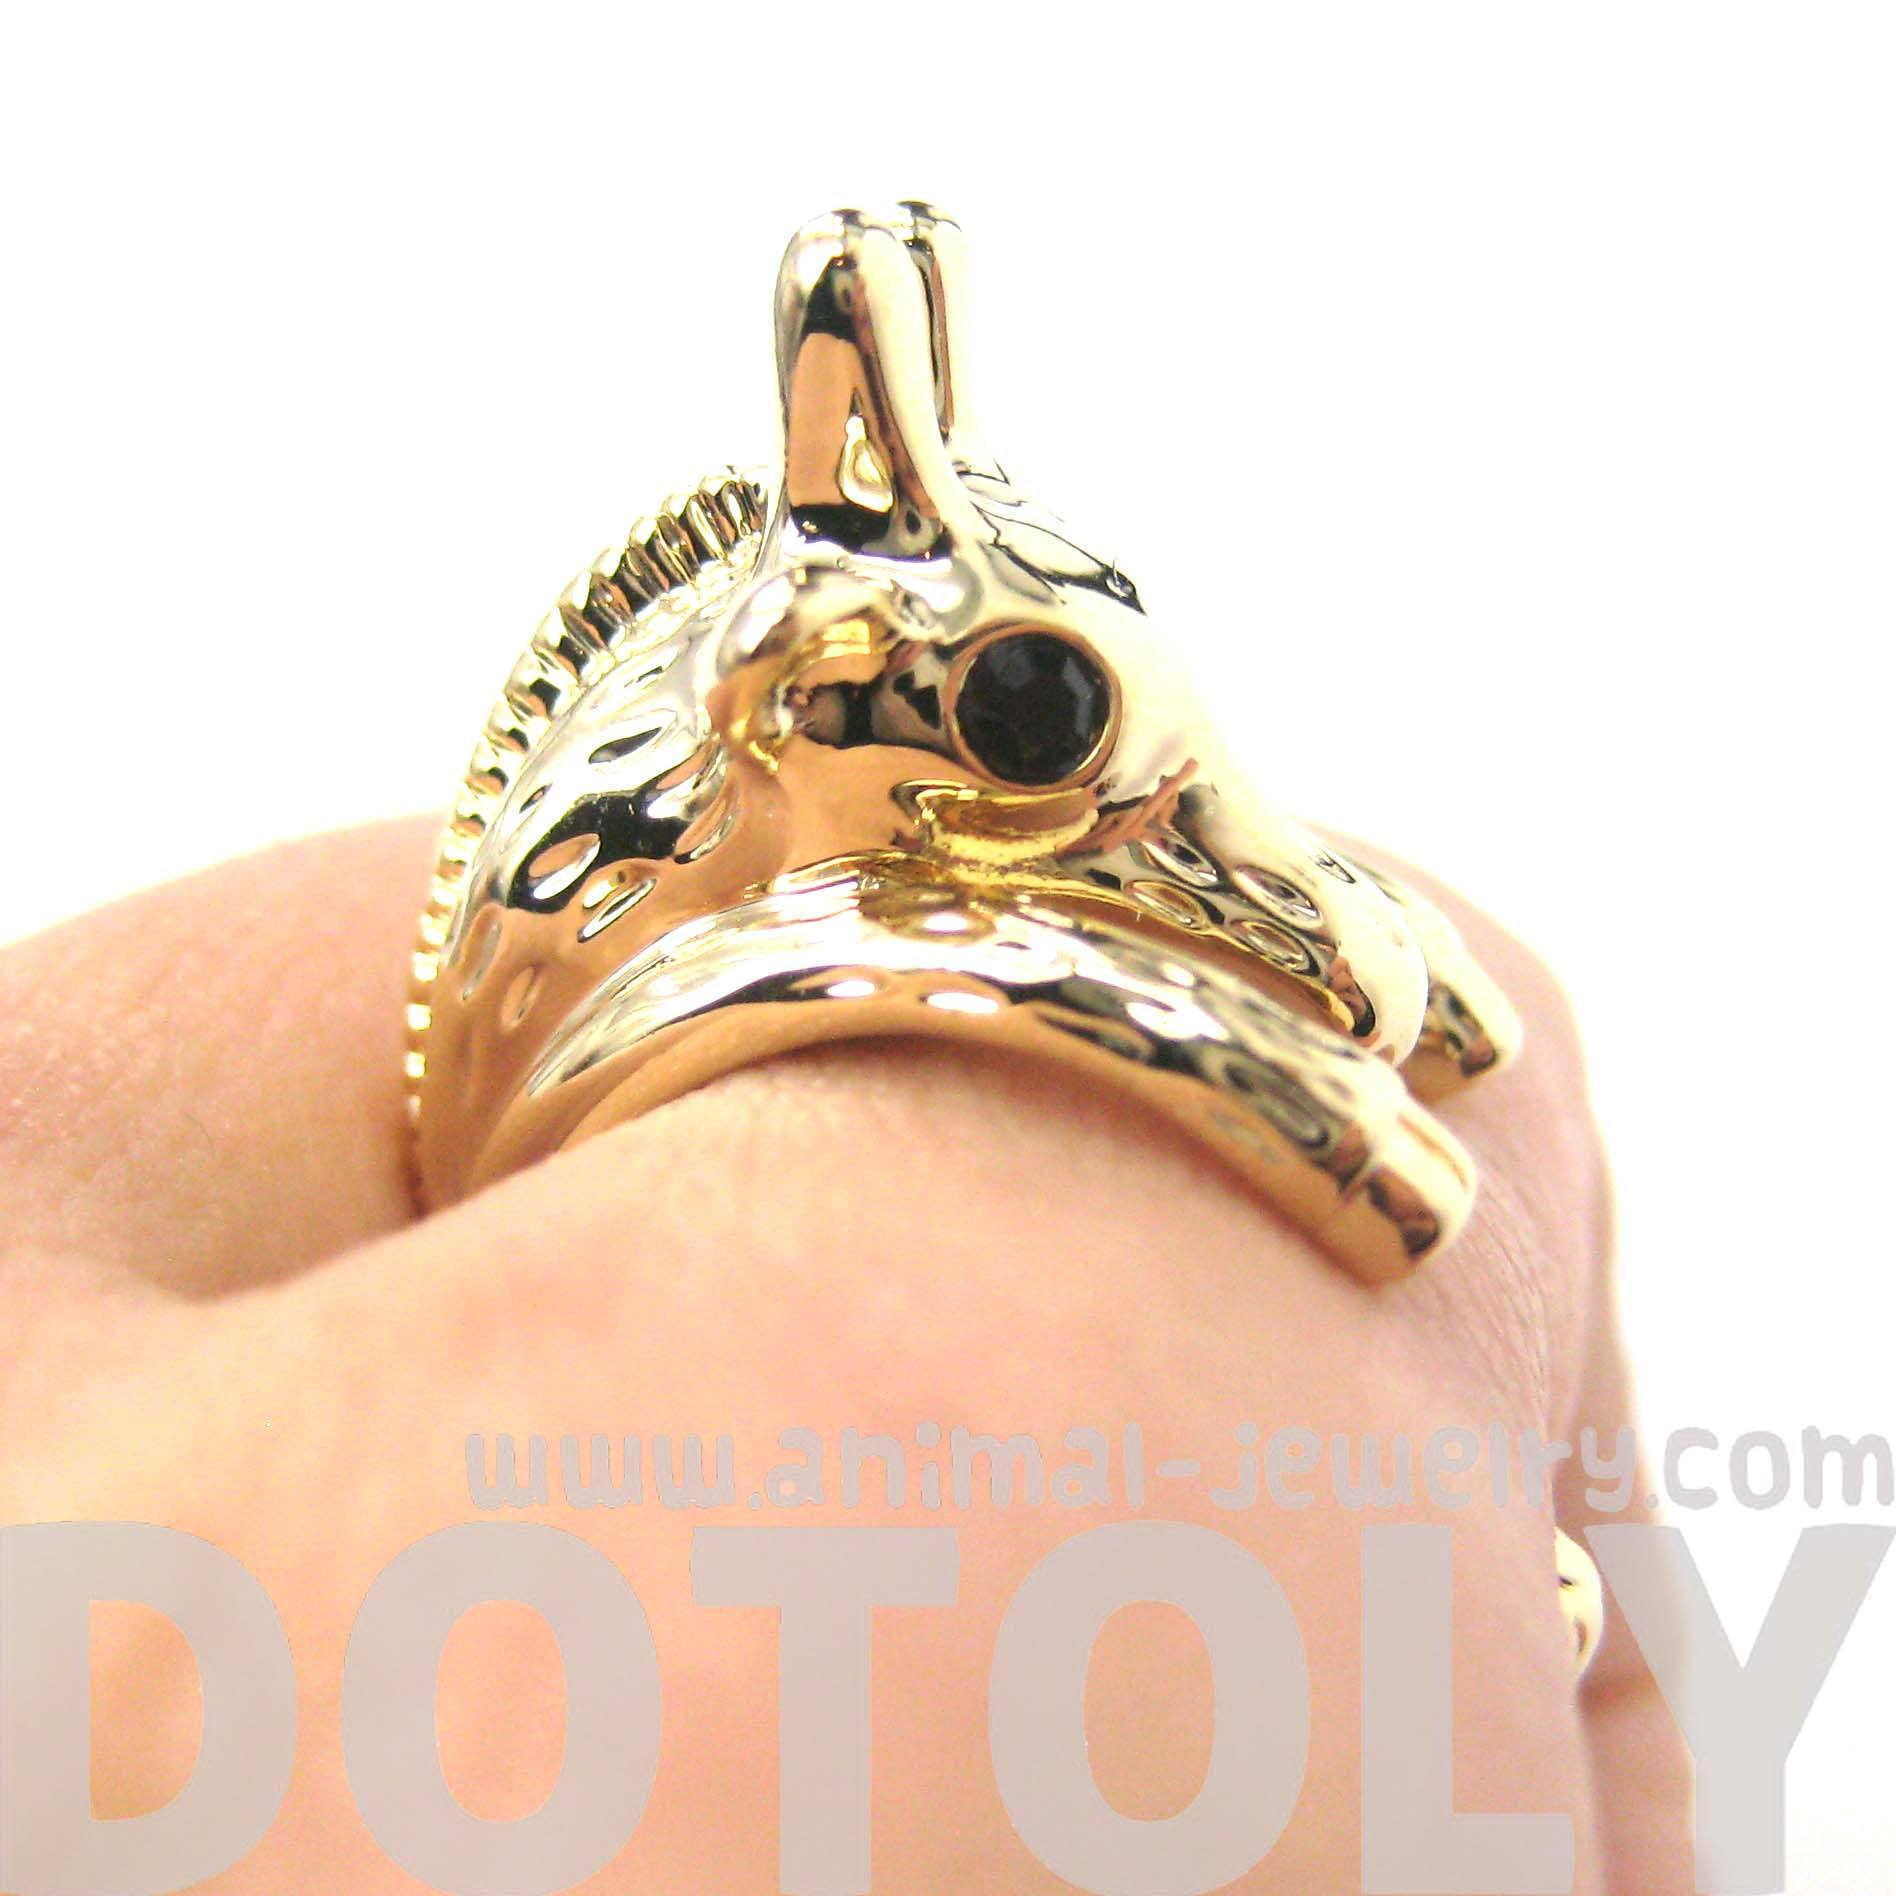 adorable-giraffe-shaped-animal-wrap-ring-in-shiny-gold-us-sizes-7-to-9